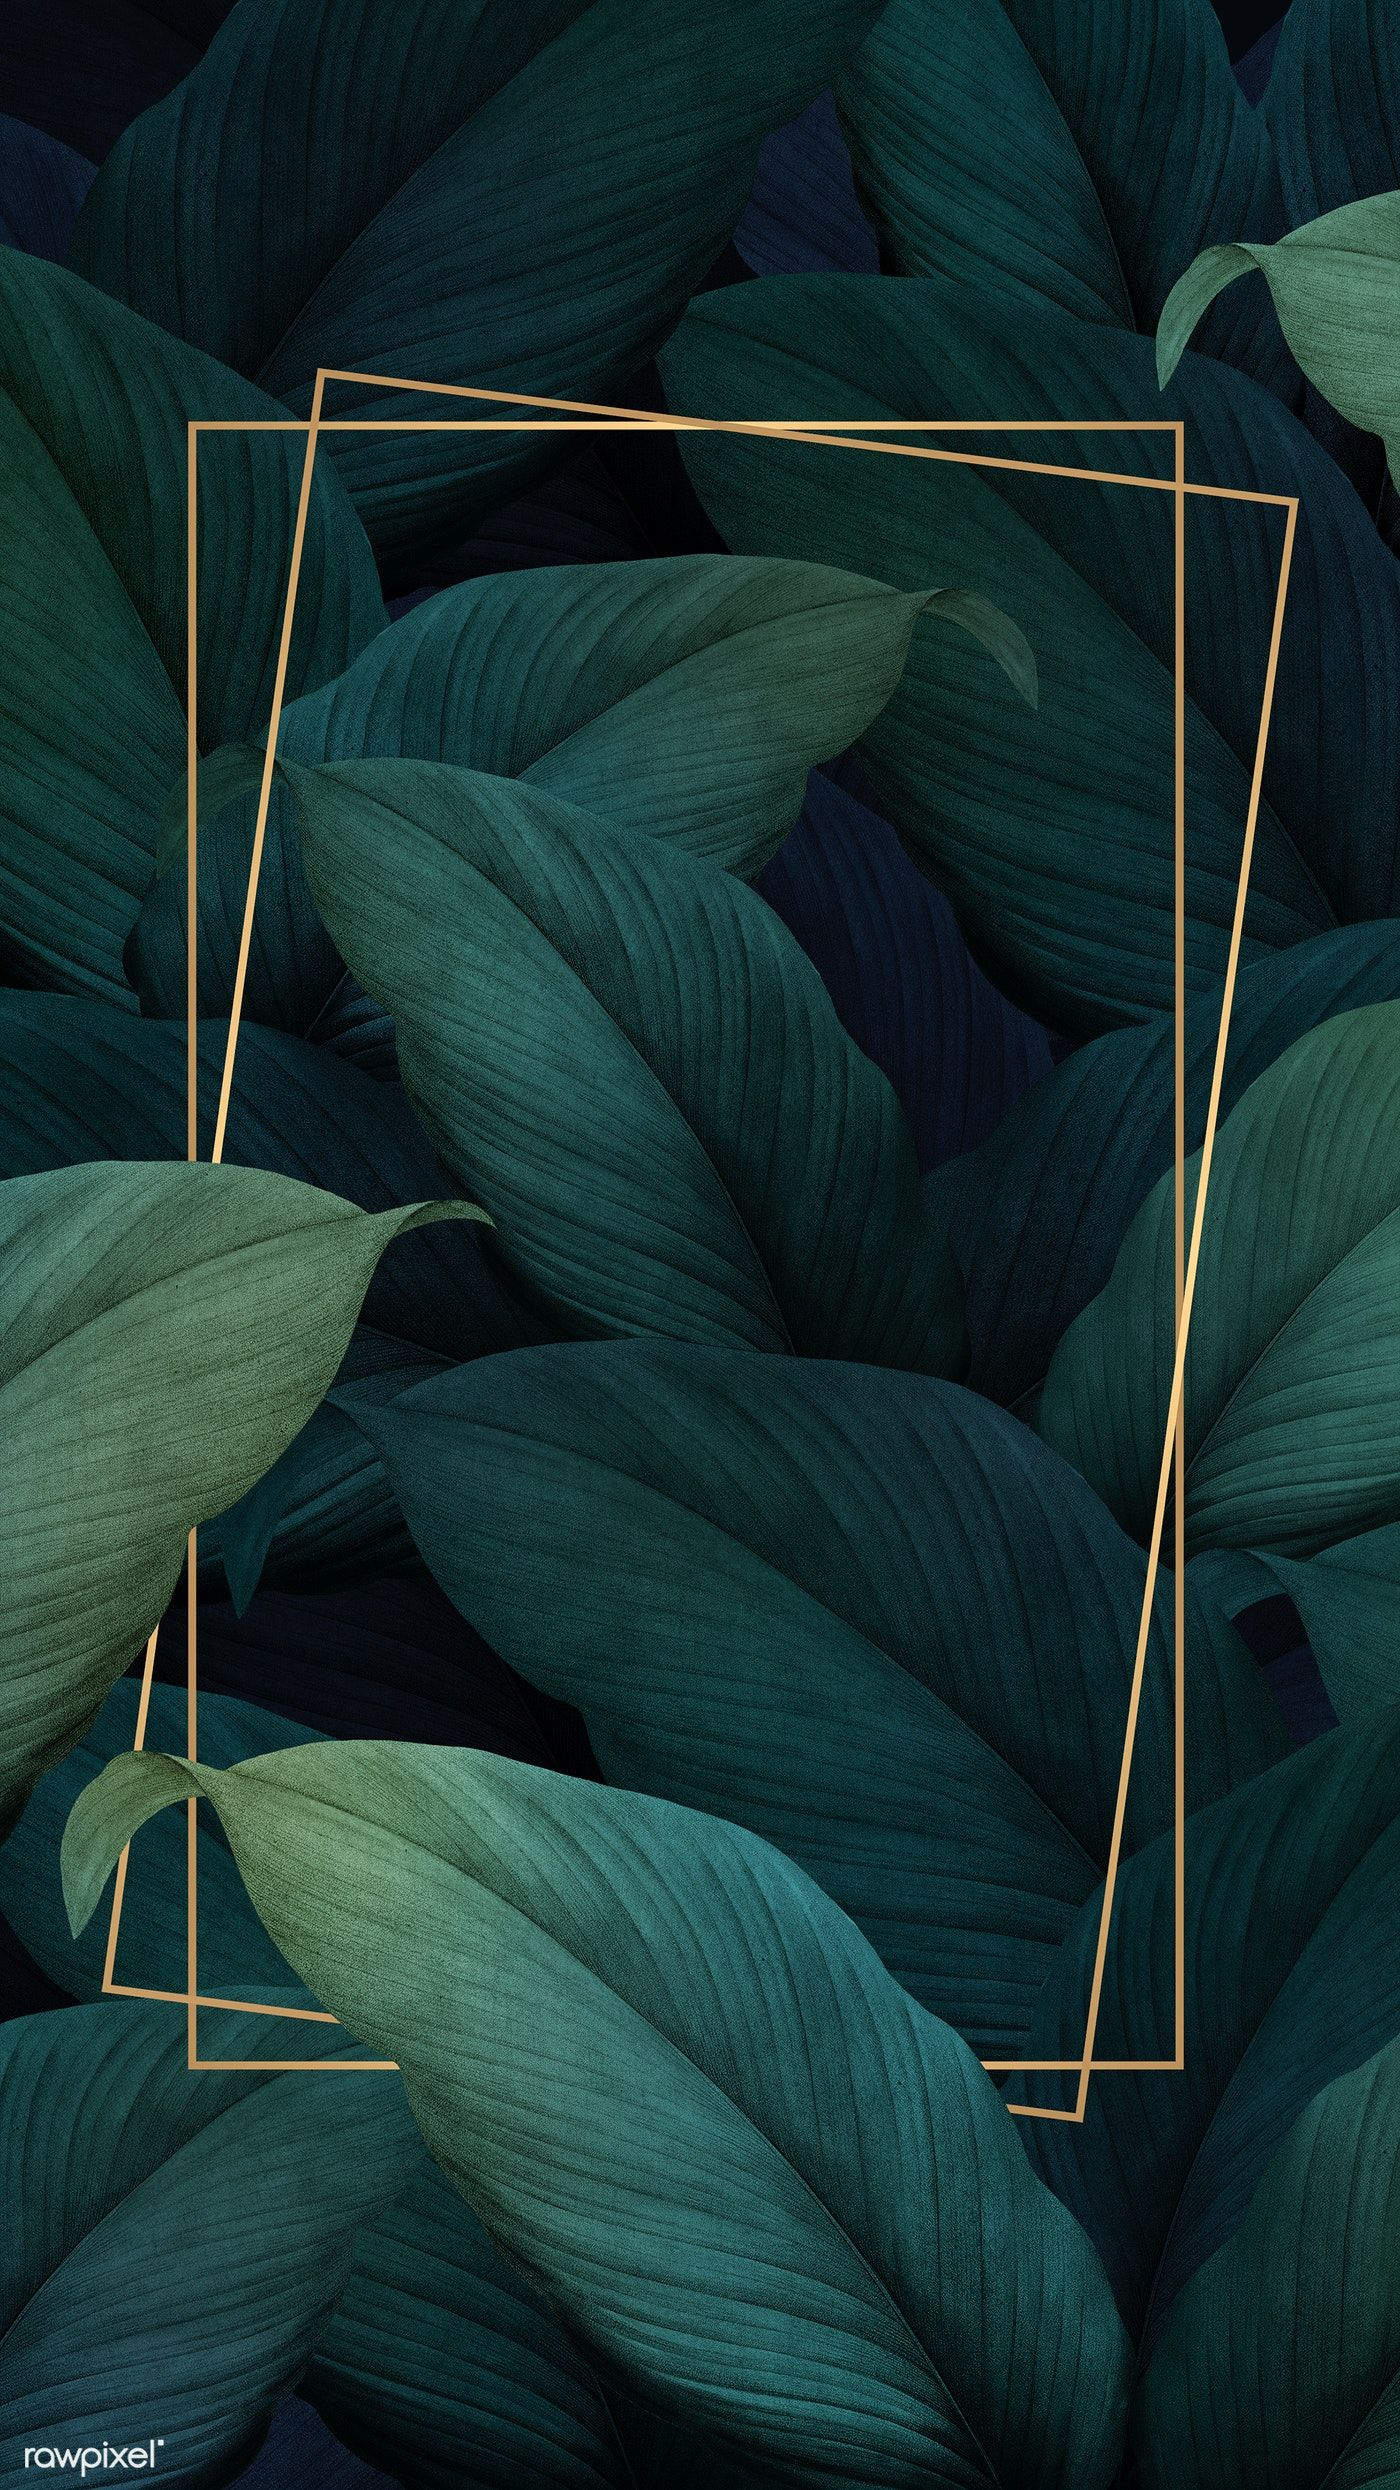 Green tropical leaves patterned poster   premium image by rawpixel.com / eyeeyeview